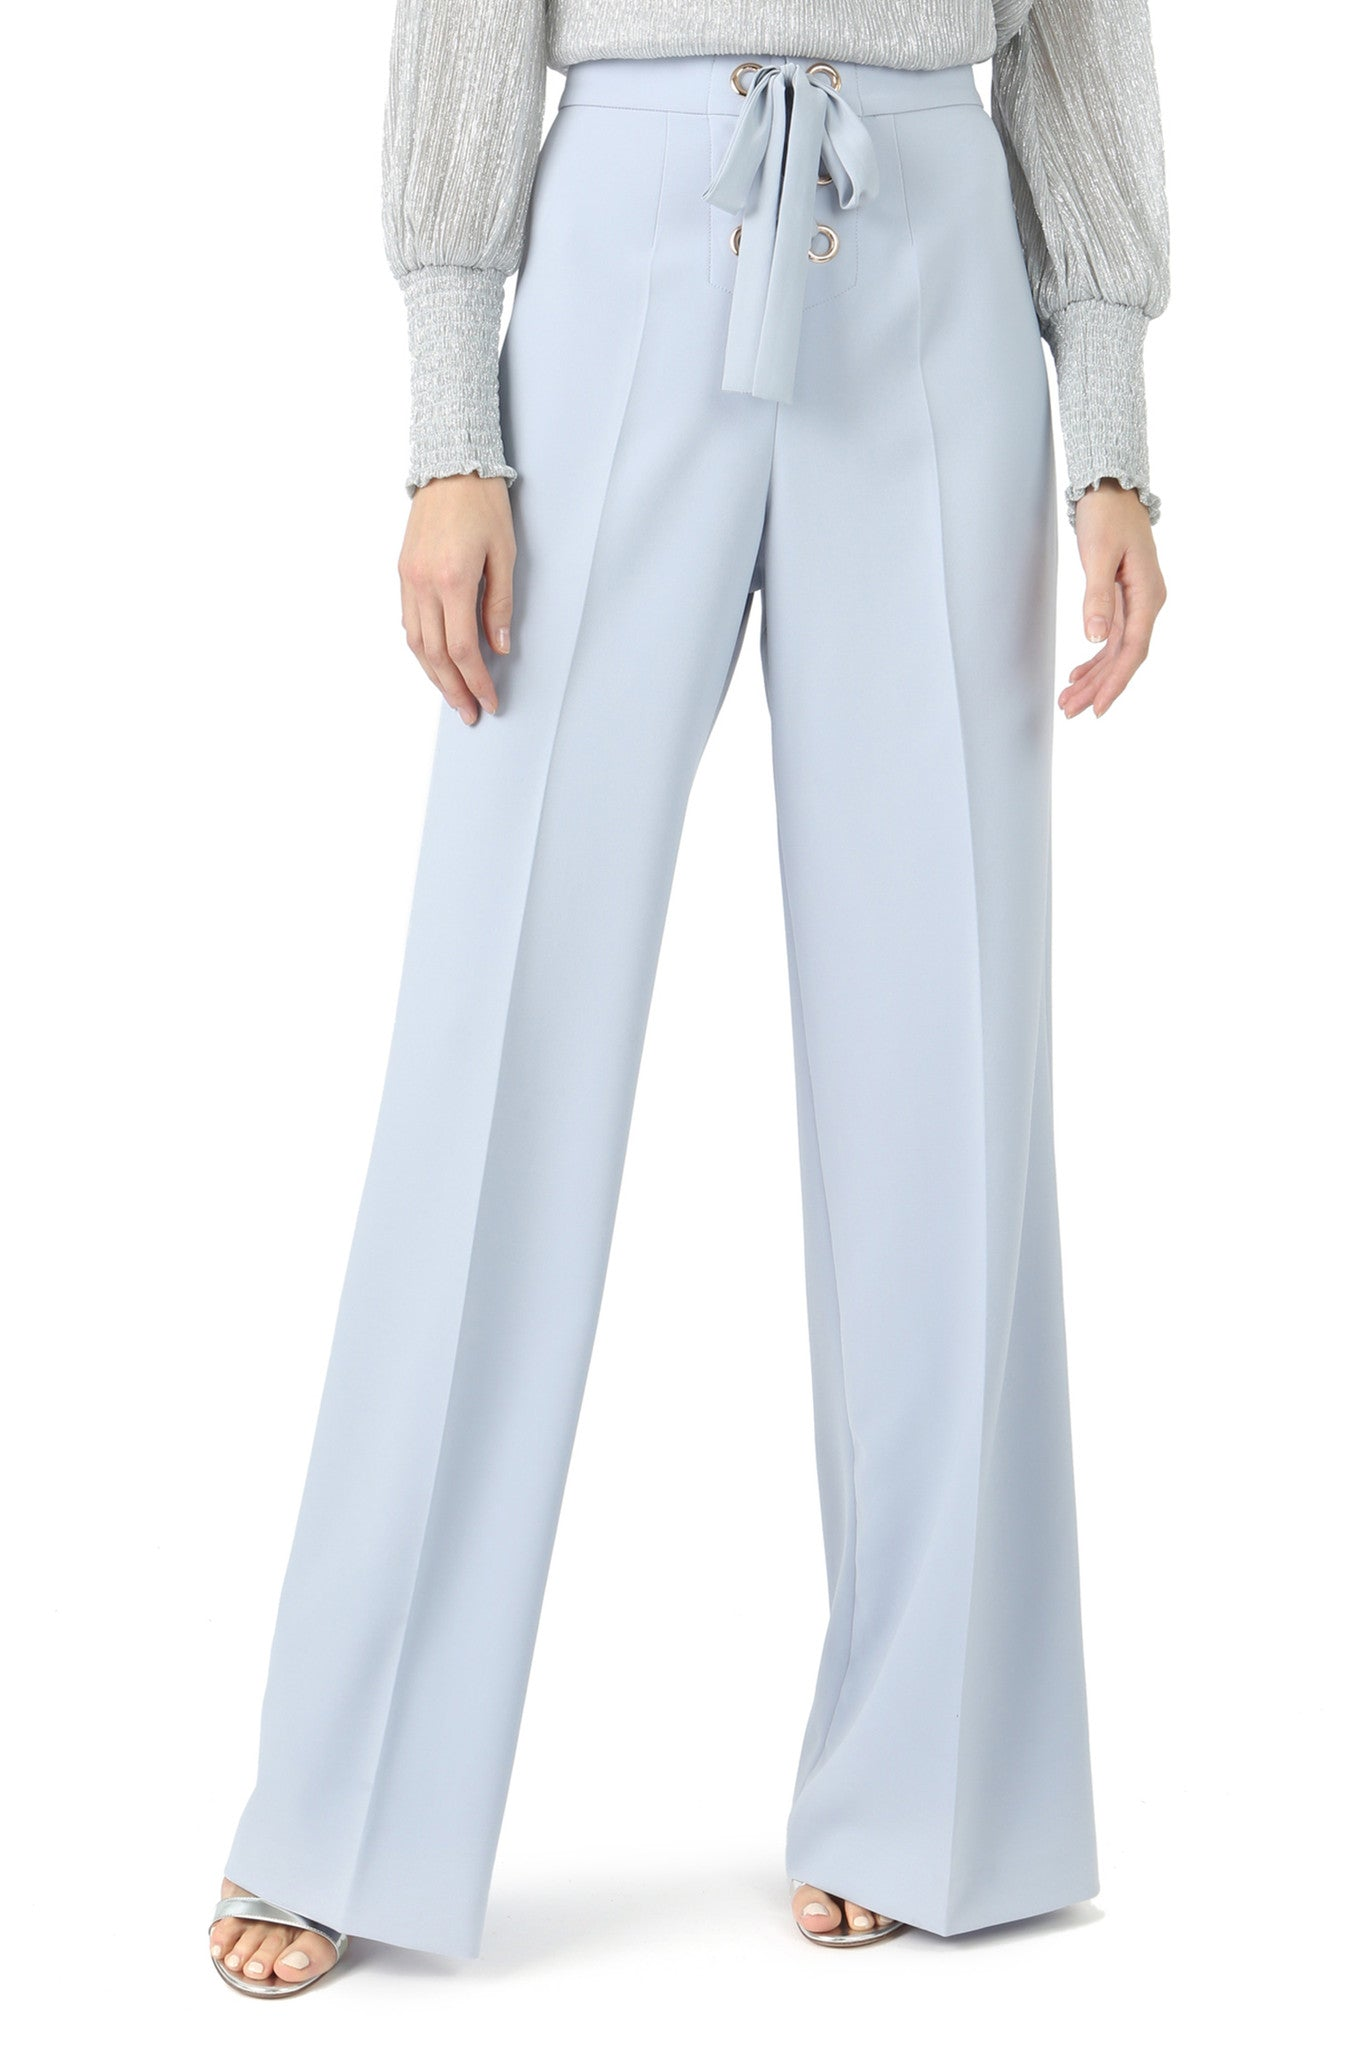 Jay Godfrey Ice Blue Lace-Up Wide Leg Pants - Front View